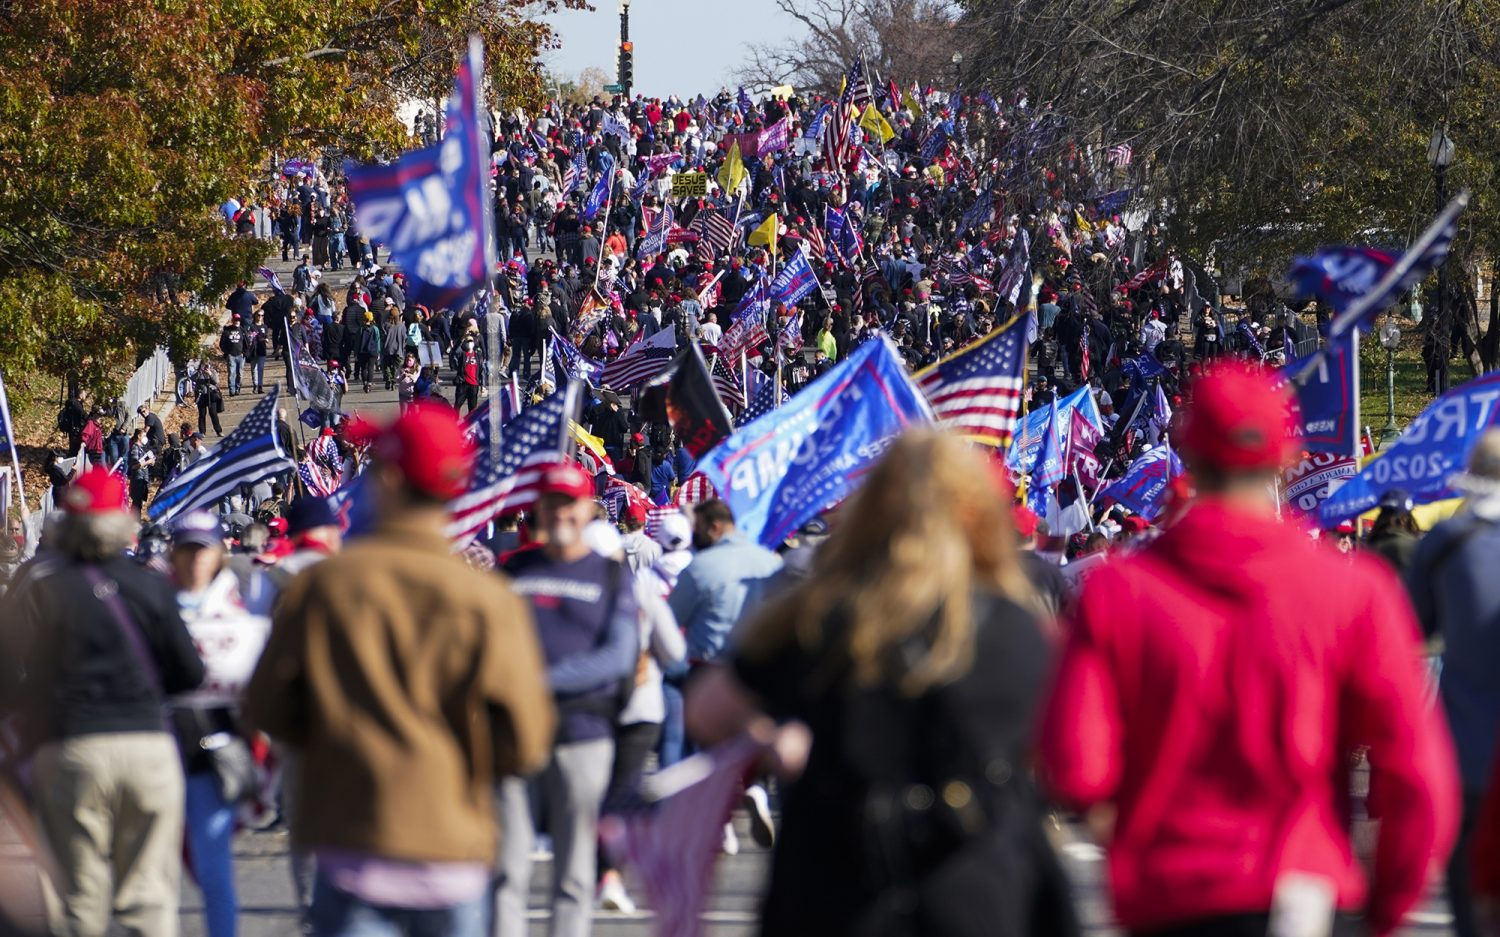 Trump supporters rally in Washington